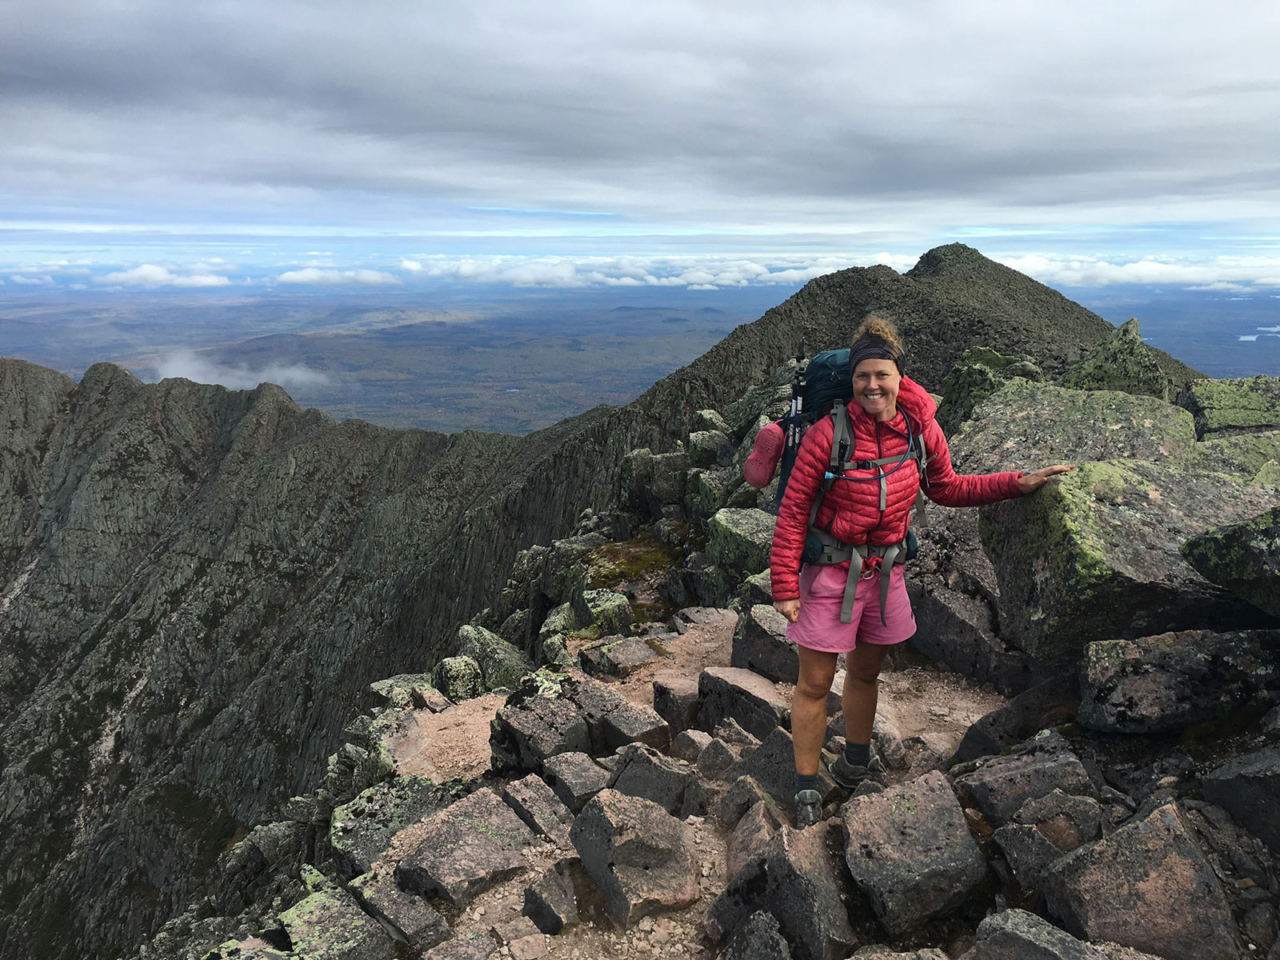 """I summited Mount Katahdin six months to the day of the beginning of my 2,189.1-mile thru-hike of the Appalachian Trail. Life is short and the trail is truly a place to live as your best self and to grow."" Photo: Laura Johnston Collection"